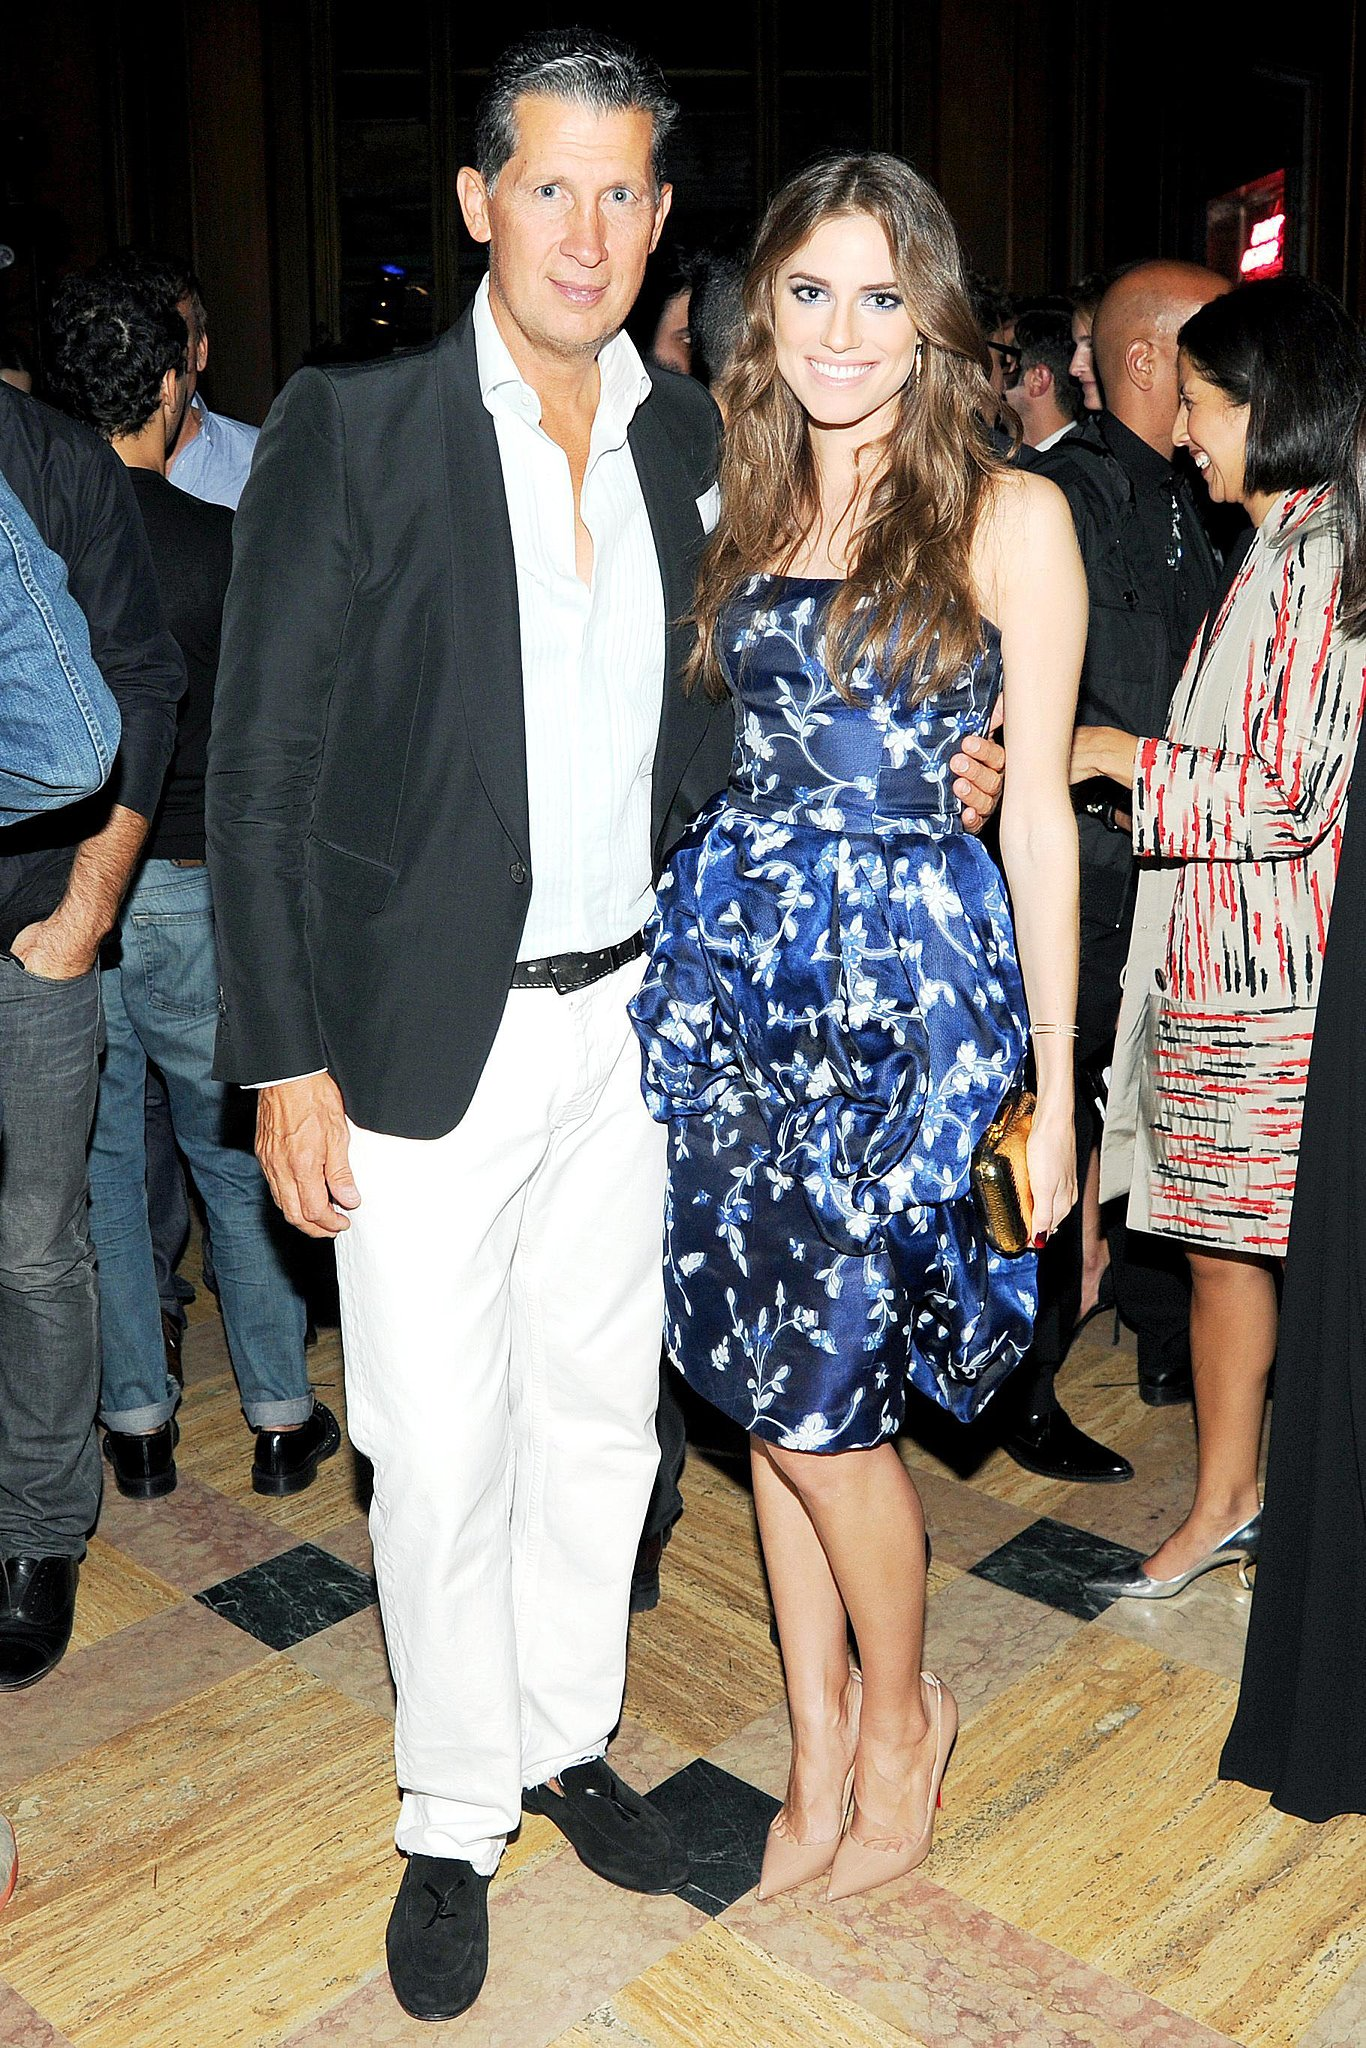 Allison Williams chatted with Stefano Tonchi. Source: Jason Merritt/BFAnyc.com